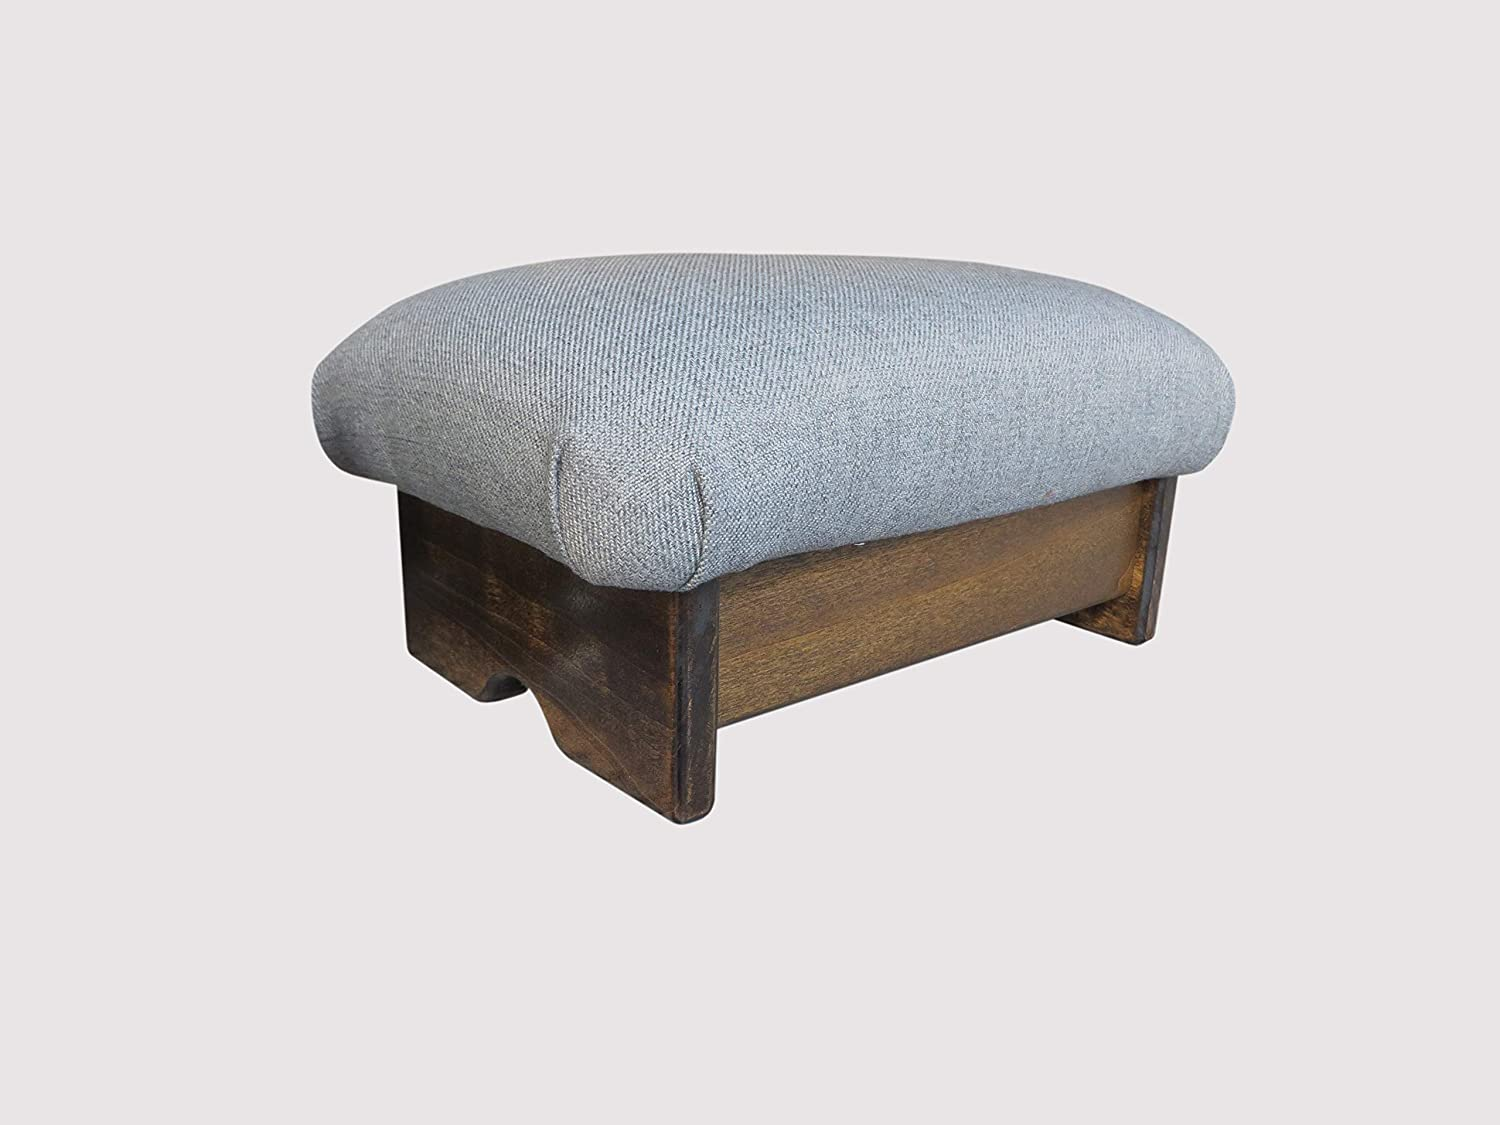 KR Ideas Padded Foot Stool Grey Ashe 7  Walnut Stain (Made in The USA)